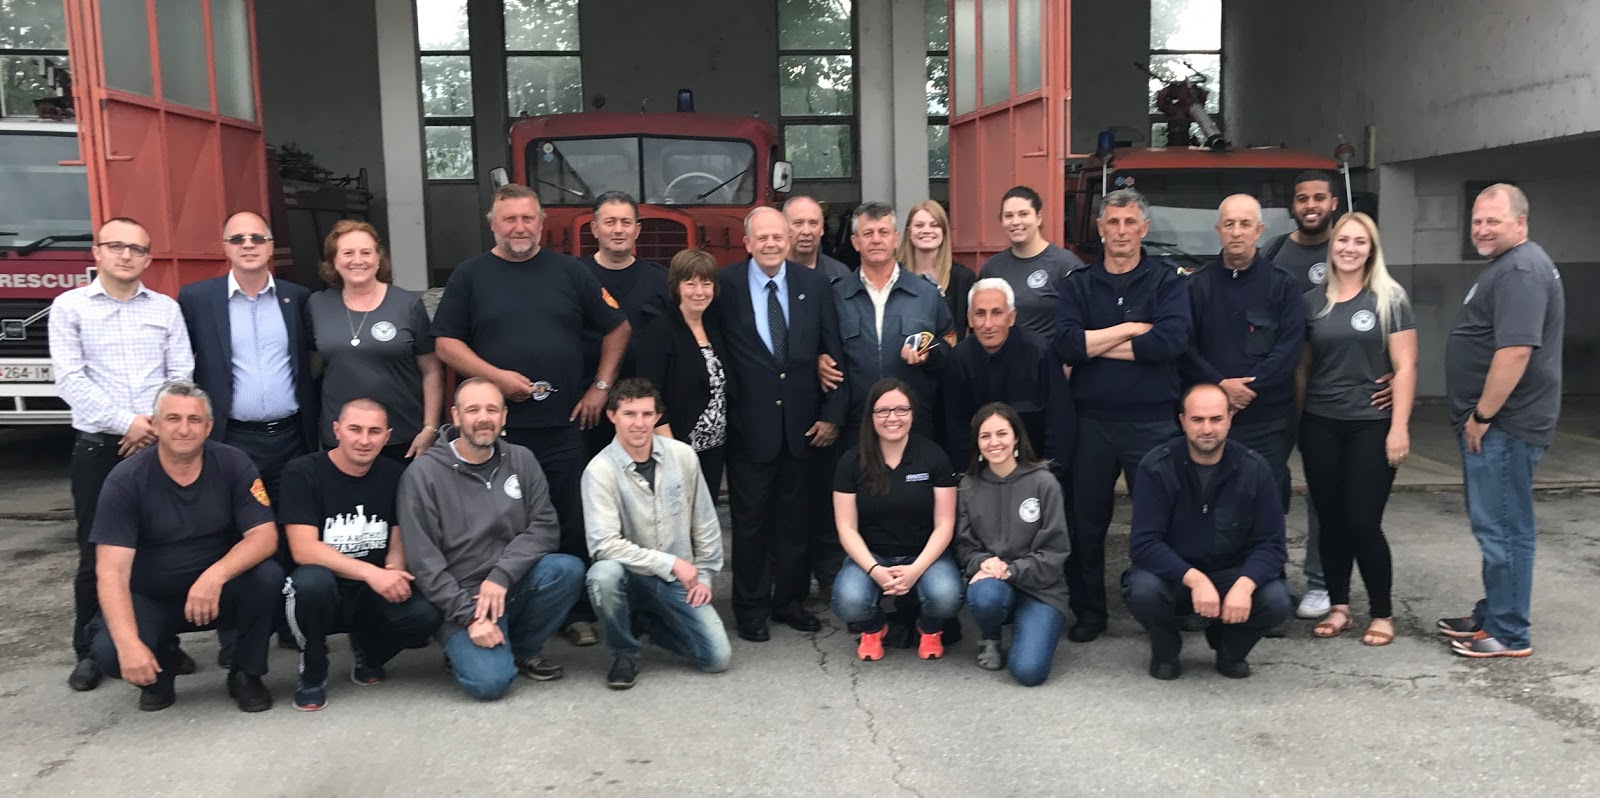 UVU students meet Macedonian firefighters